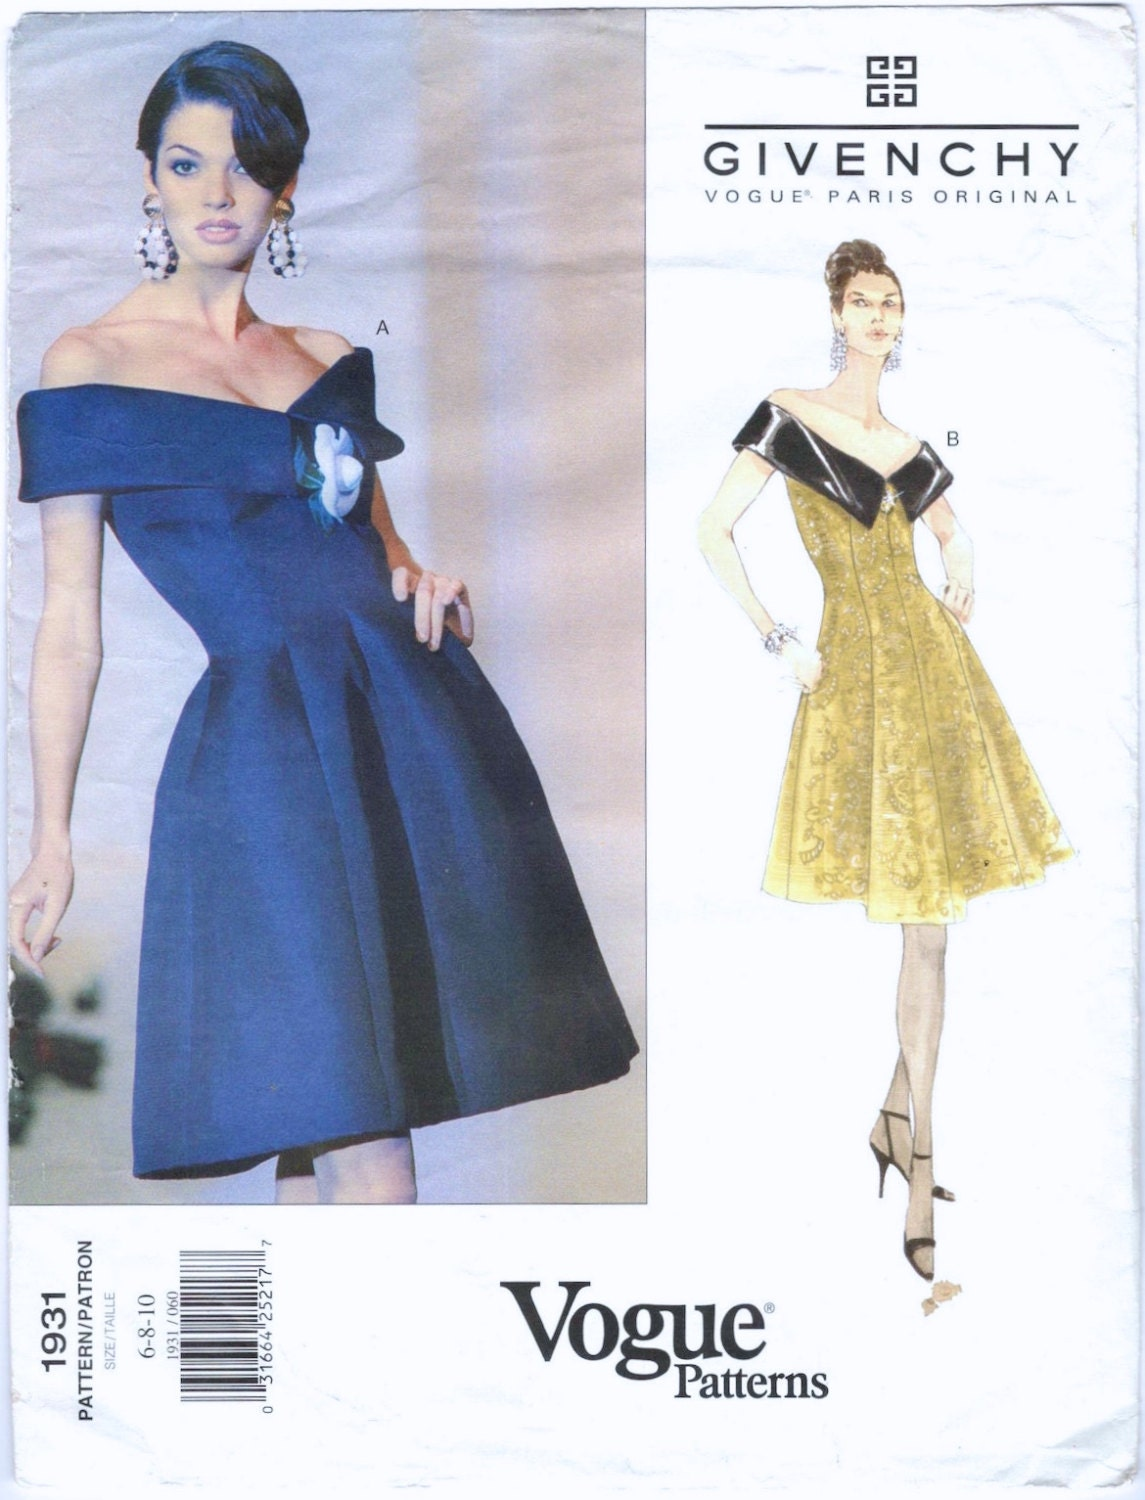 1990s Hubert de Givenchy cocktail dress pattern - Vogue 1931